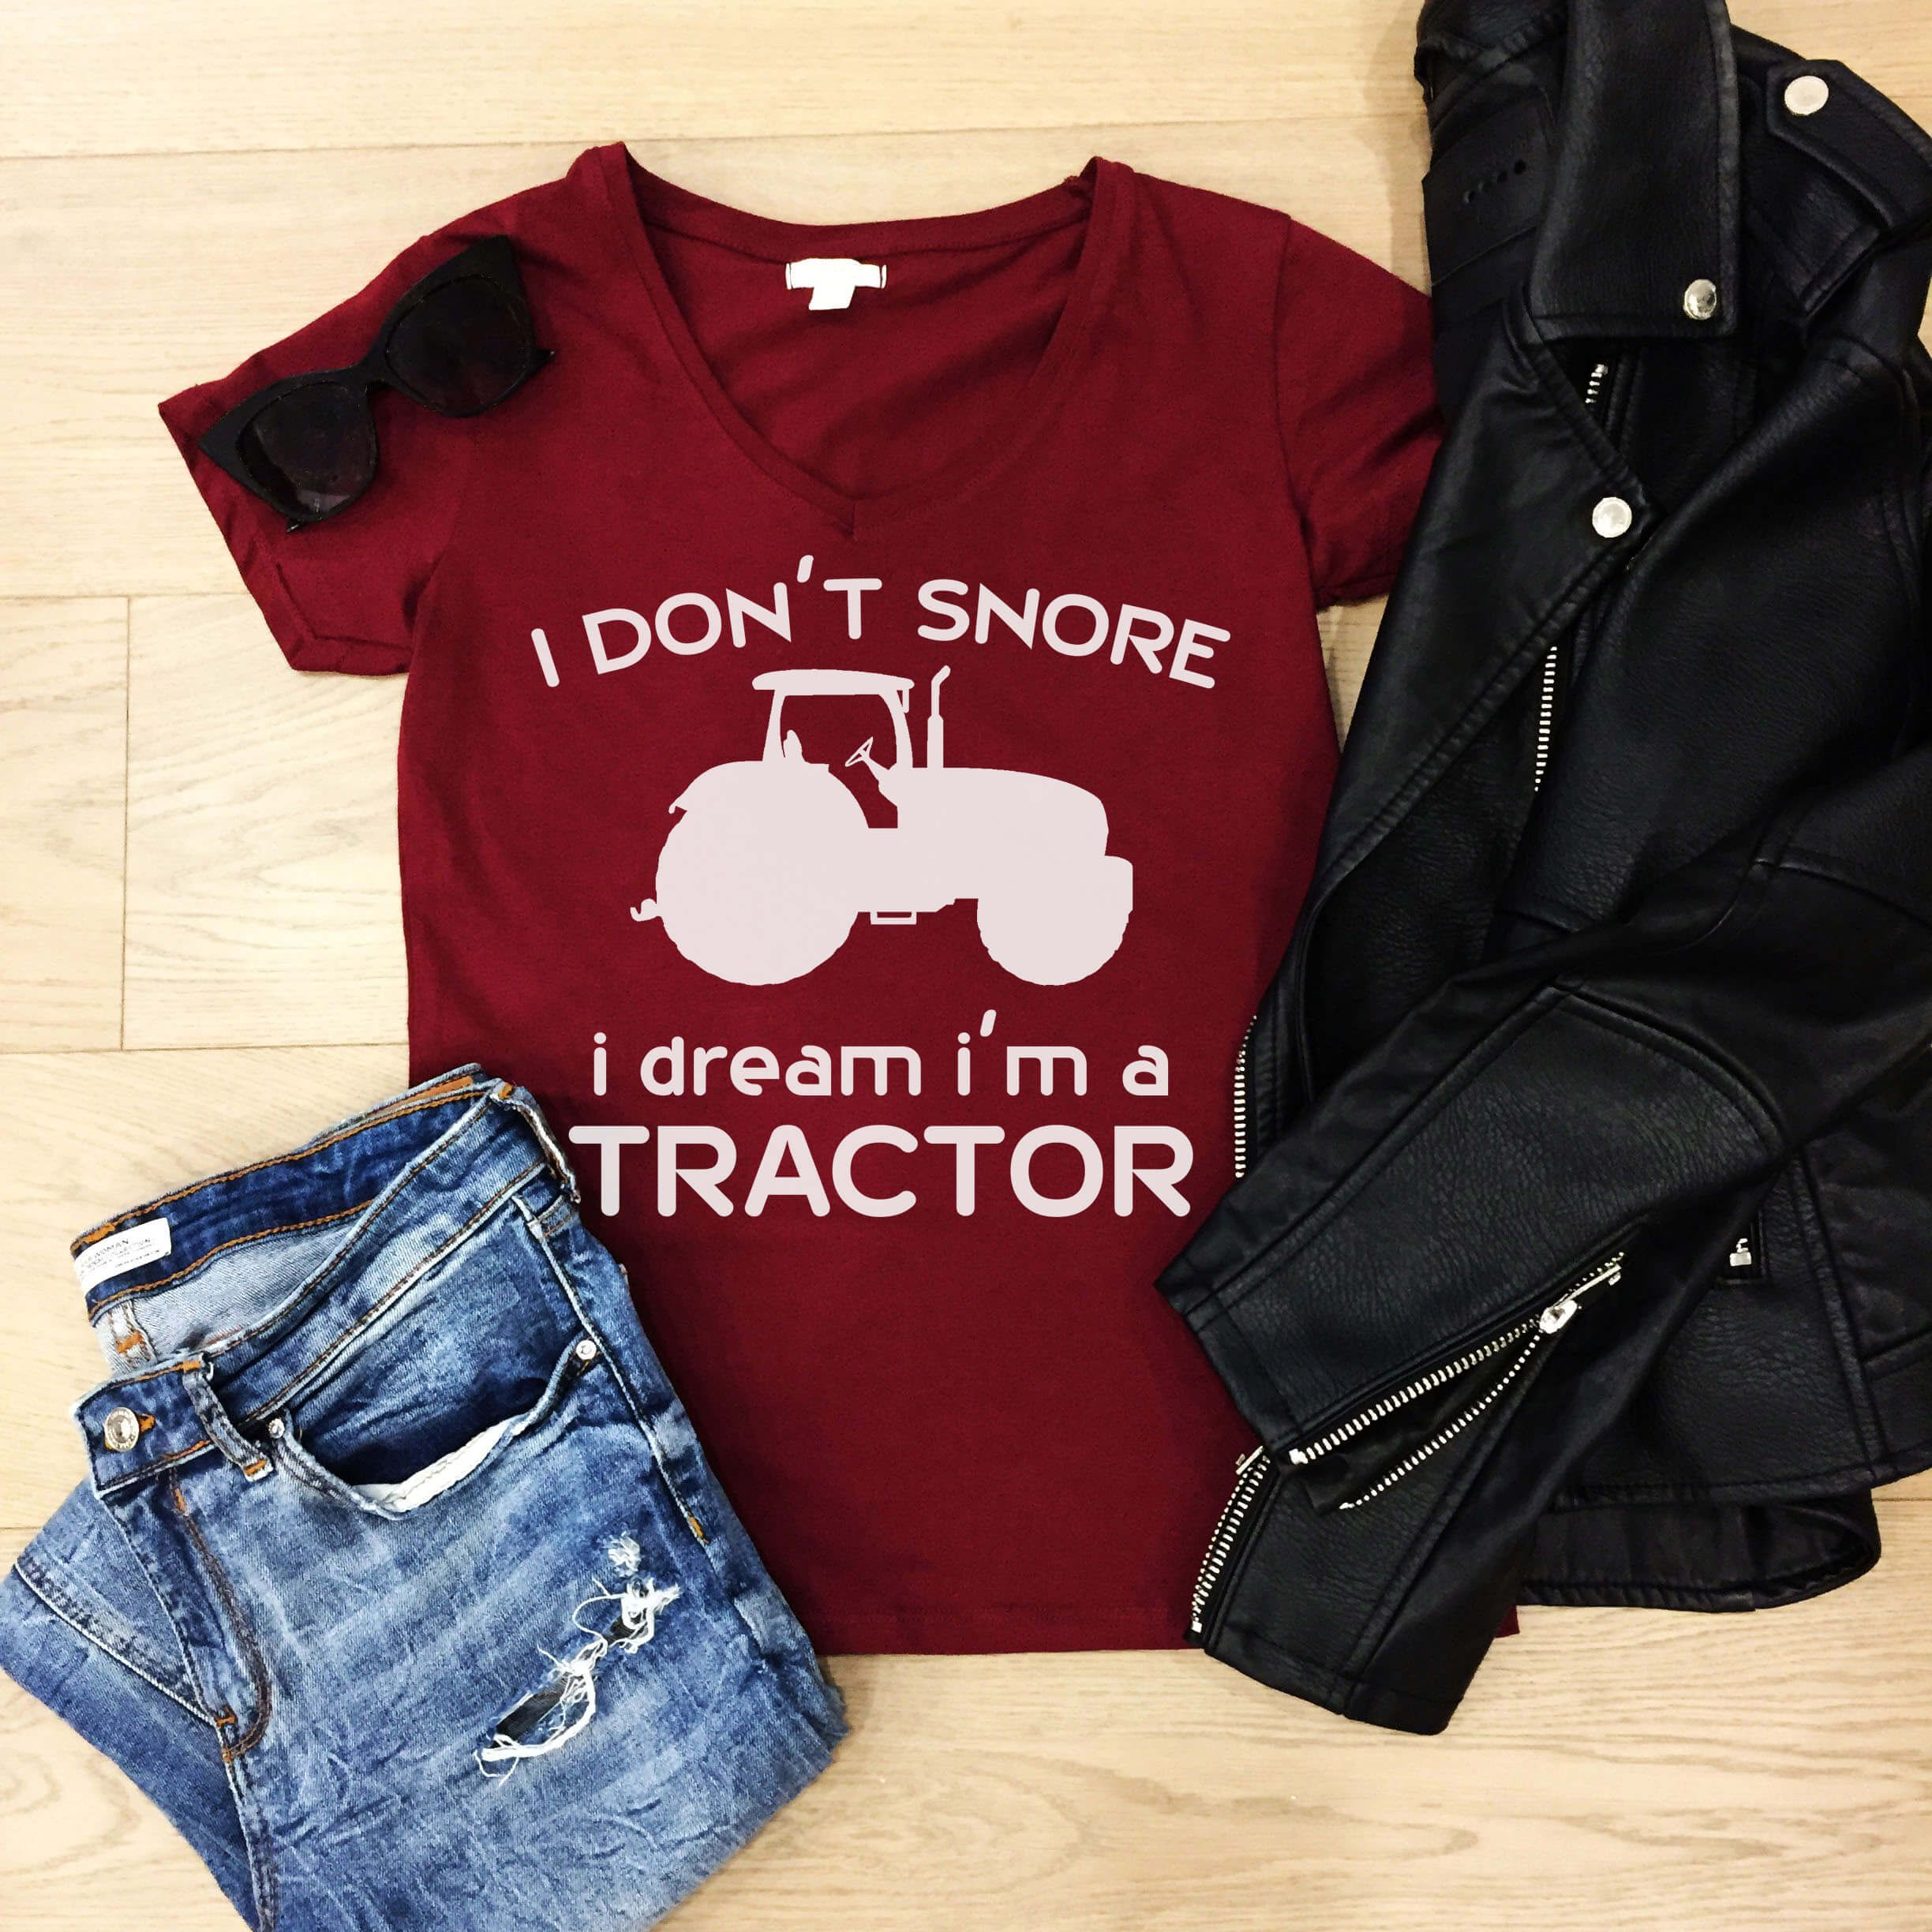 Free Snore Like A Tractor Svg File Svg Tractor Shirt Vinyl Shirts